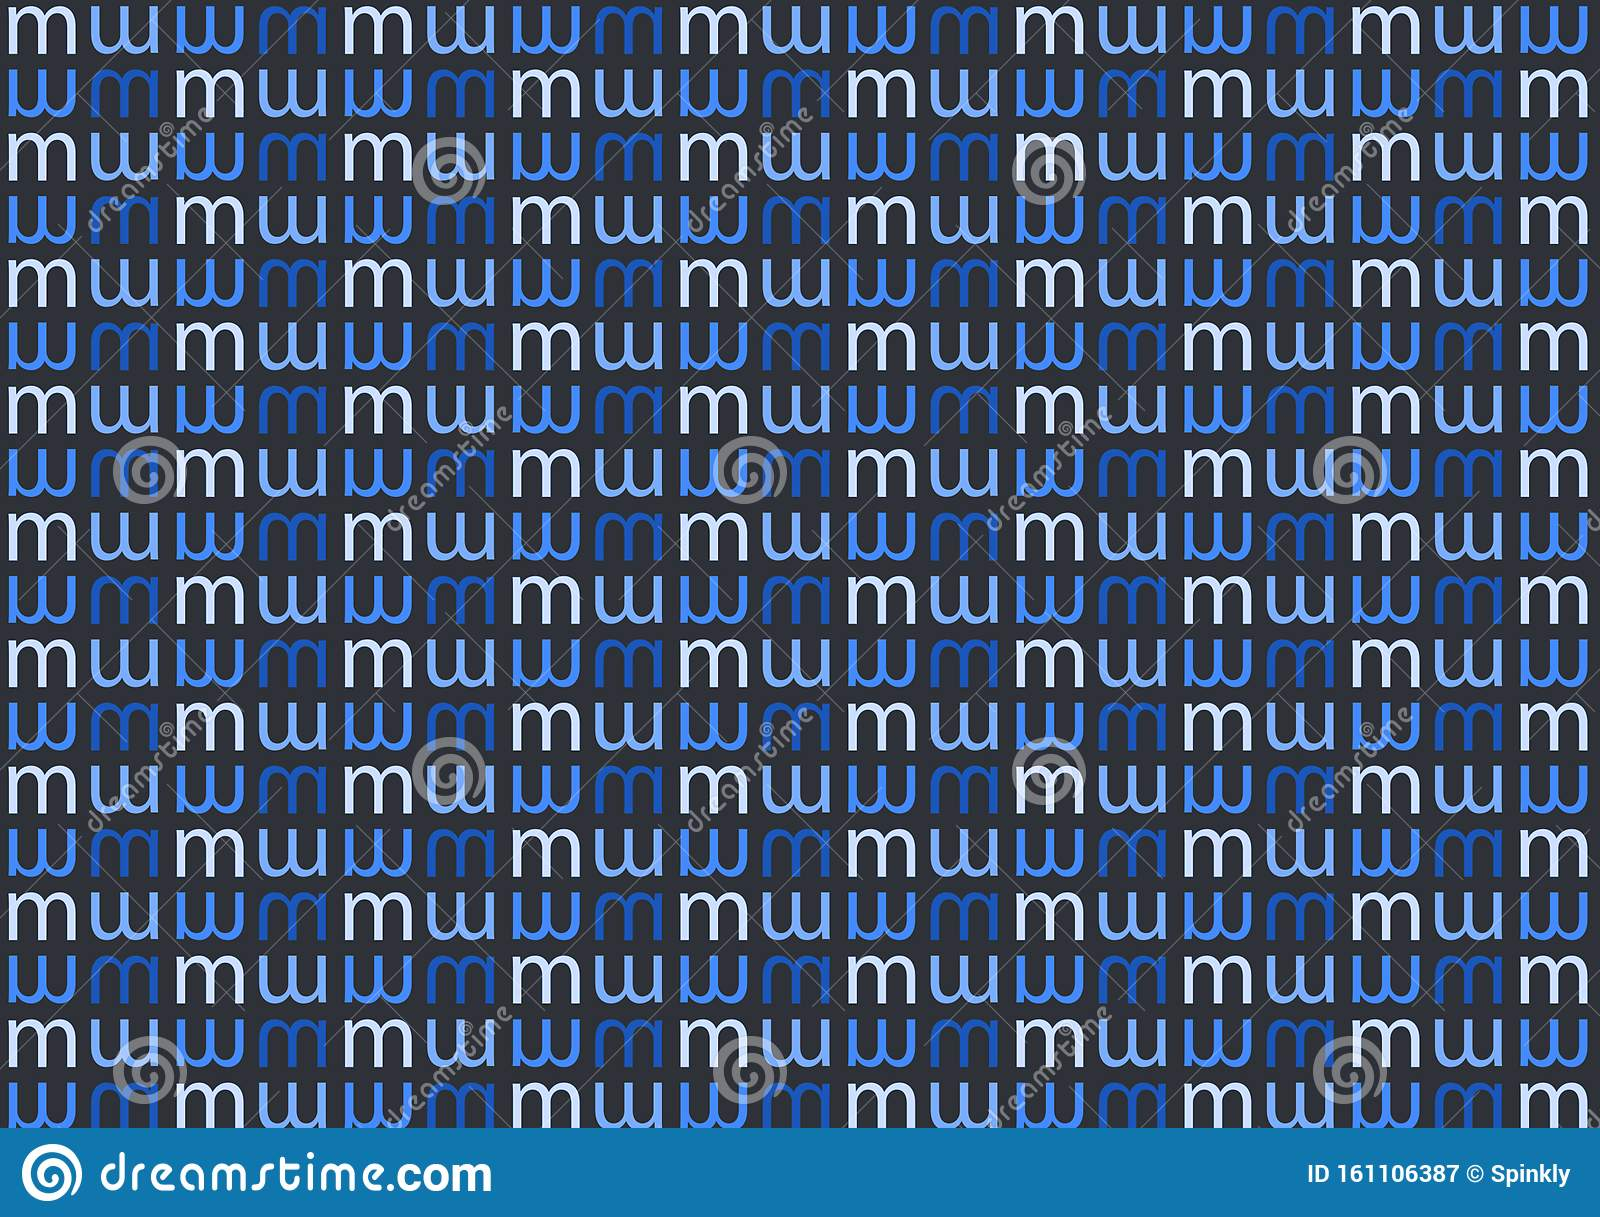 Letter M Pattern In Different Colored Blue Shades For Wallpaper Stock Illustration Illustration Of Text Layers 161106387